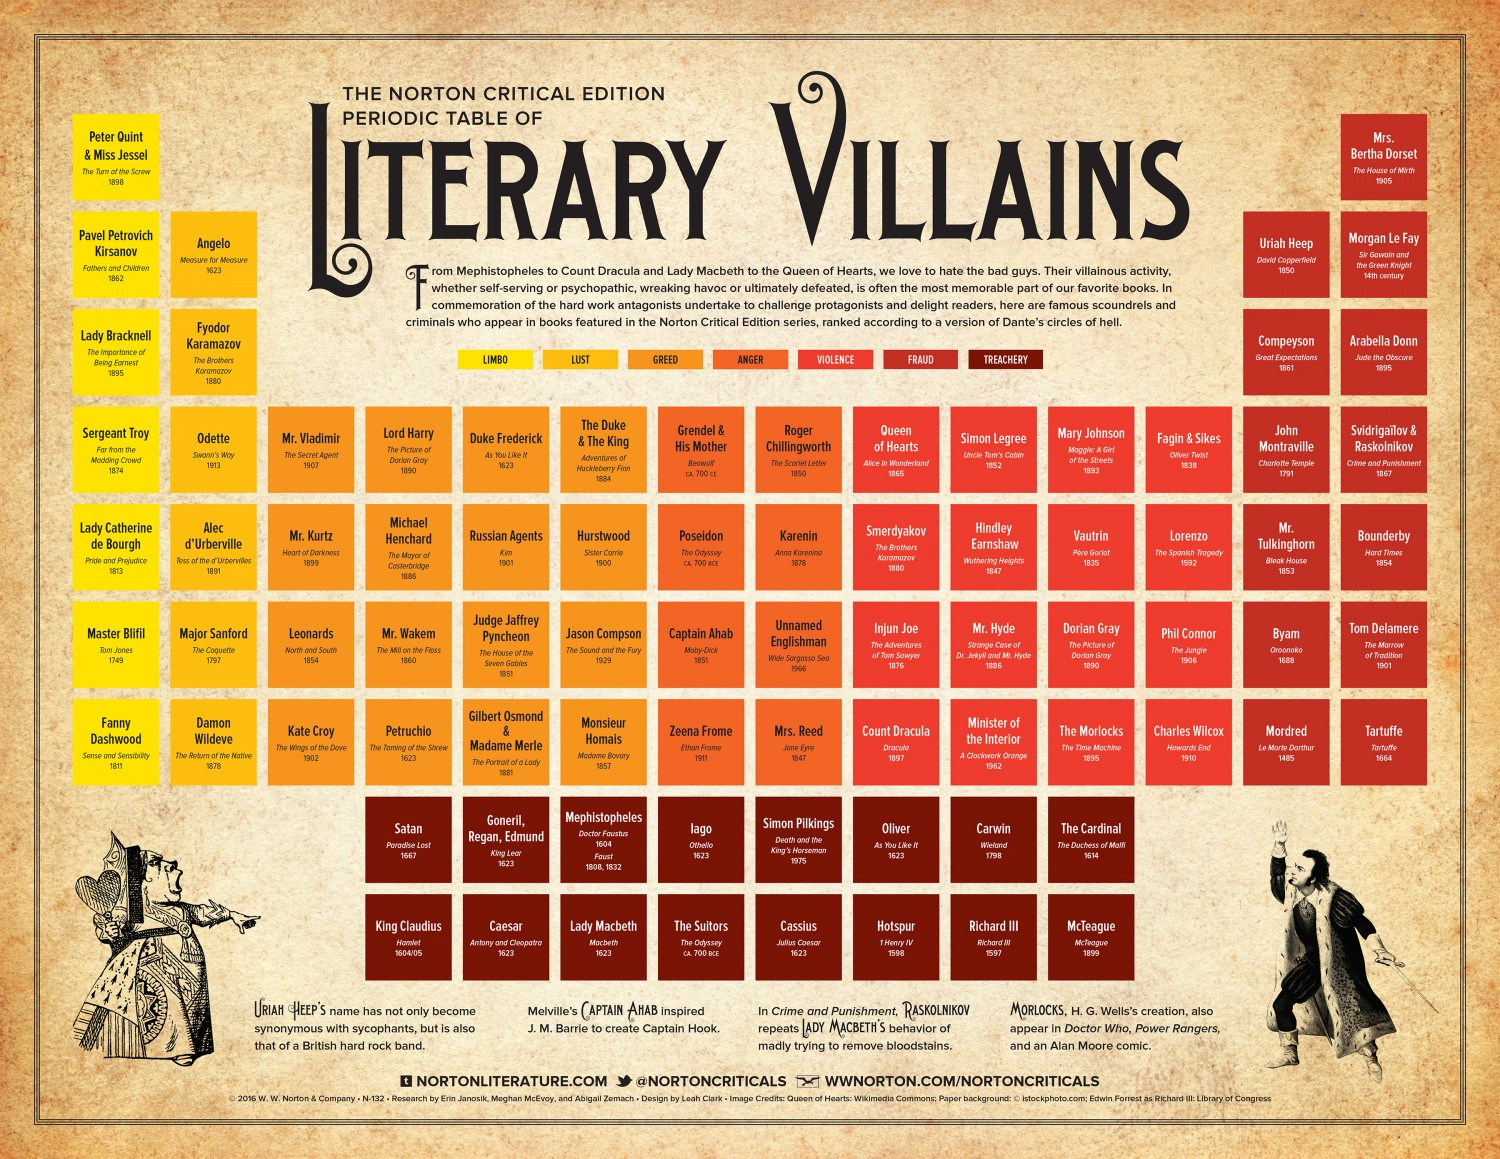 Check this out periodic table of literary villains novel escapism periodic table of literary villains novel escapism gamestrikefo Choice Image